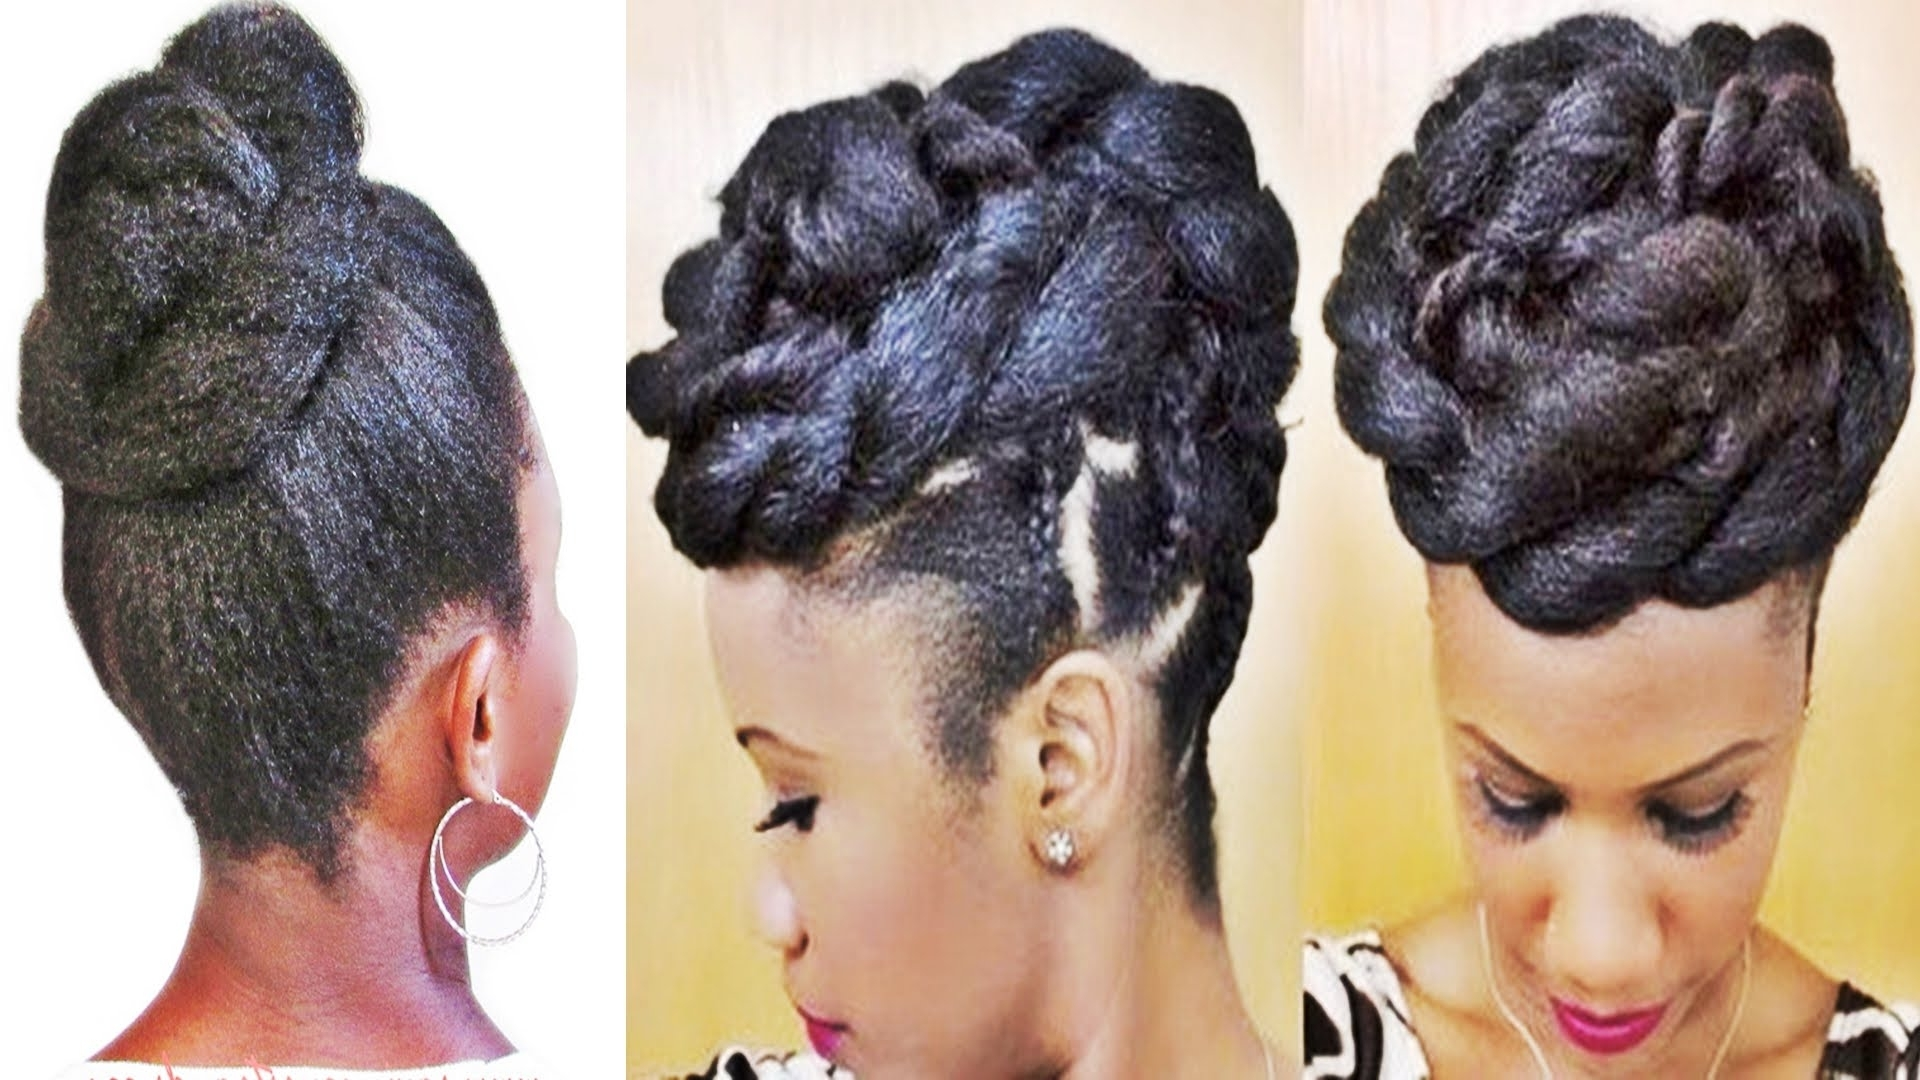 Braids And Twists Updo Hairstyle For Black Women – Youtube With Regard To Updo Hairstyles For Black Hair (View 7 of 15)